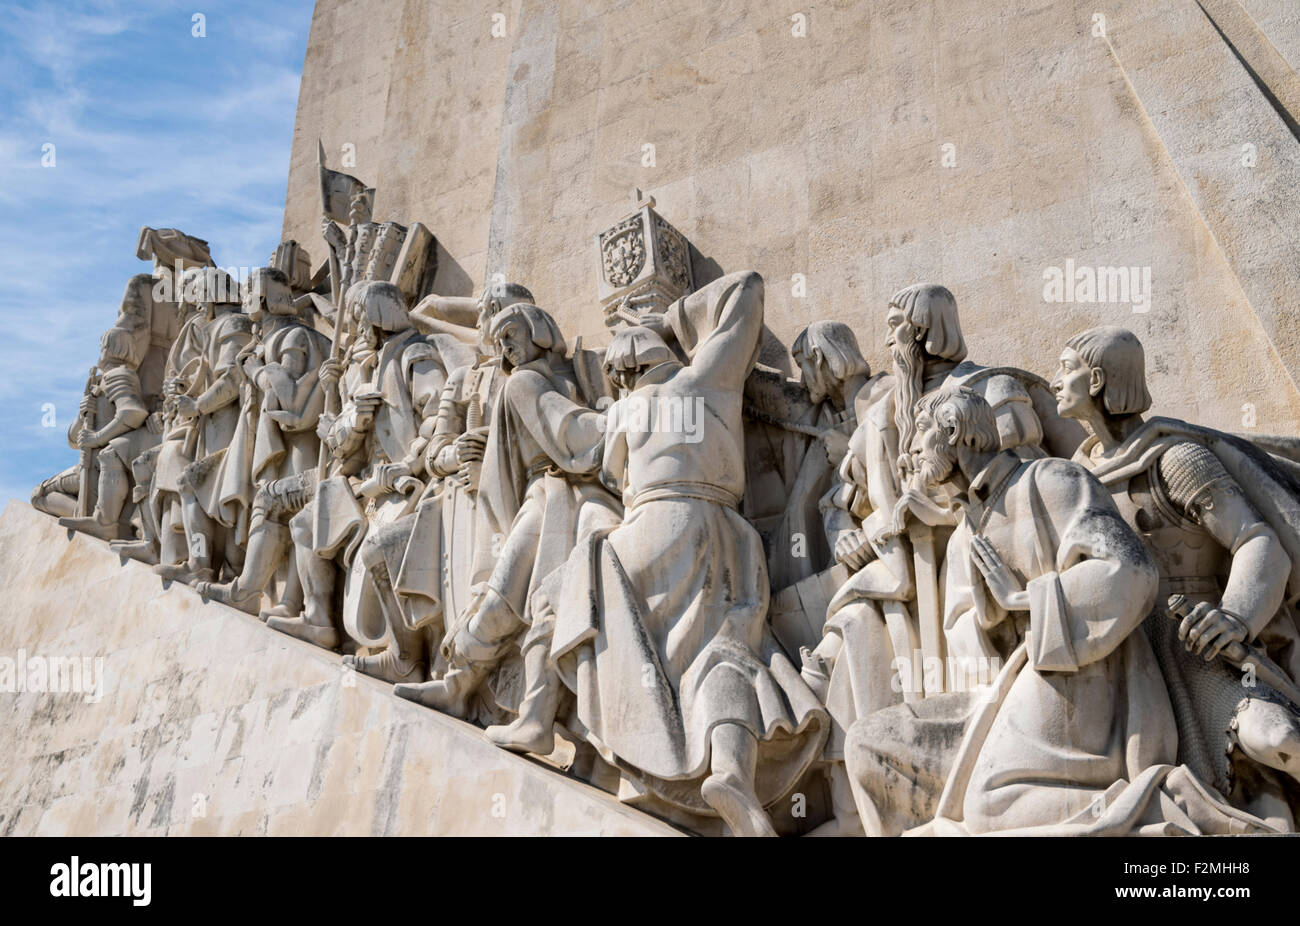 Discoveries Monument, Lisbon Portugal - Stock Image